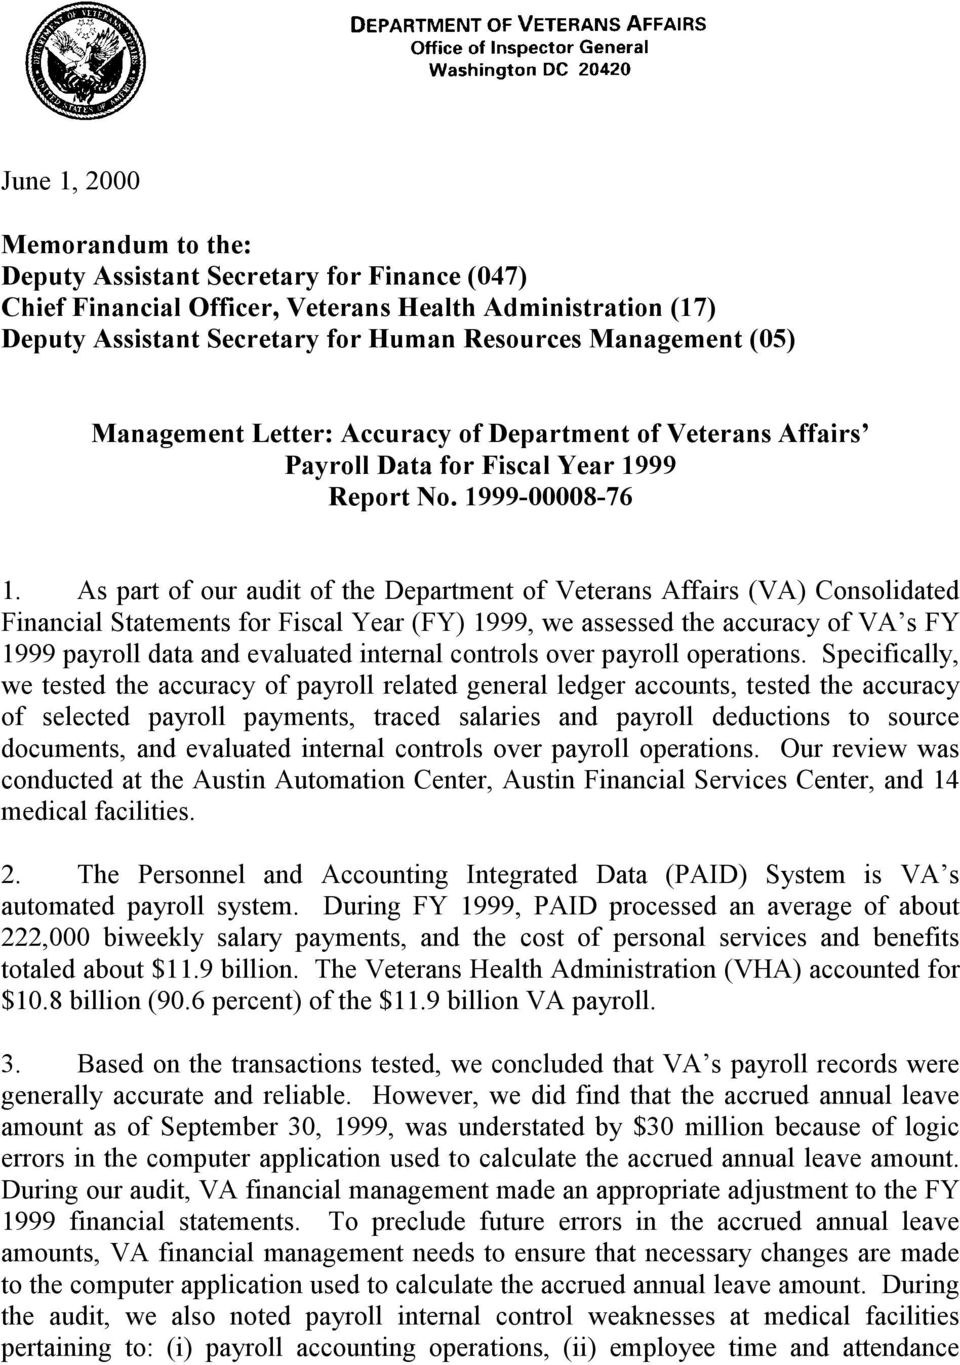 As part of our audit of the Department of Veterans Affairs (VA) Consolidated Financial Statements for Fiscal Year (FY) 1999, we assessed the accuracy of VA s FY 1999 payroll data and evaluated